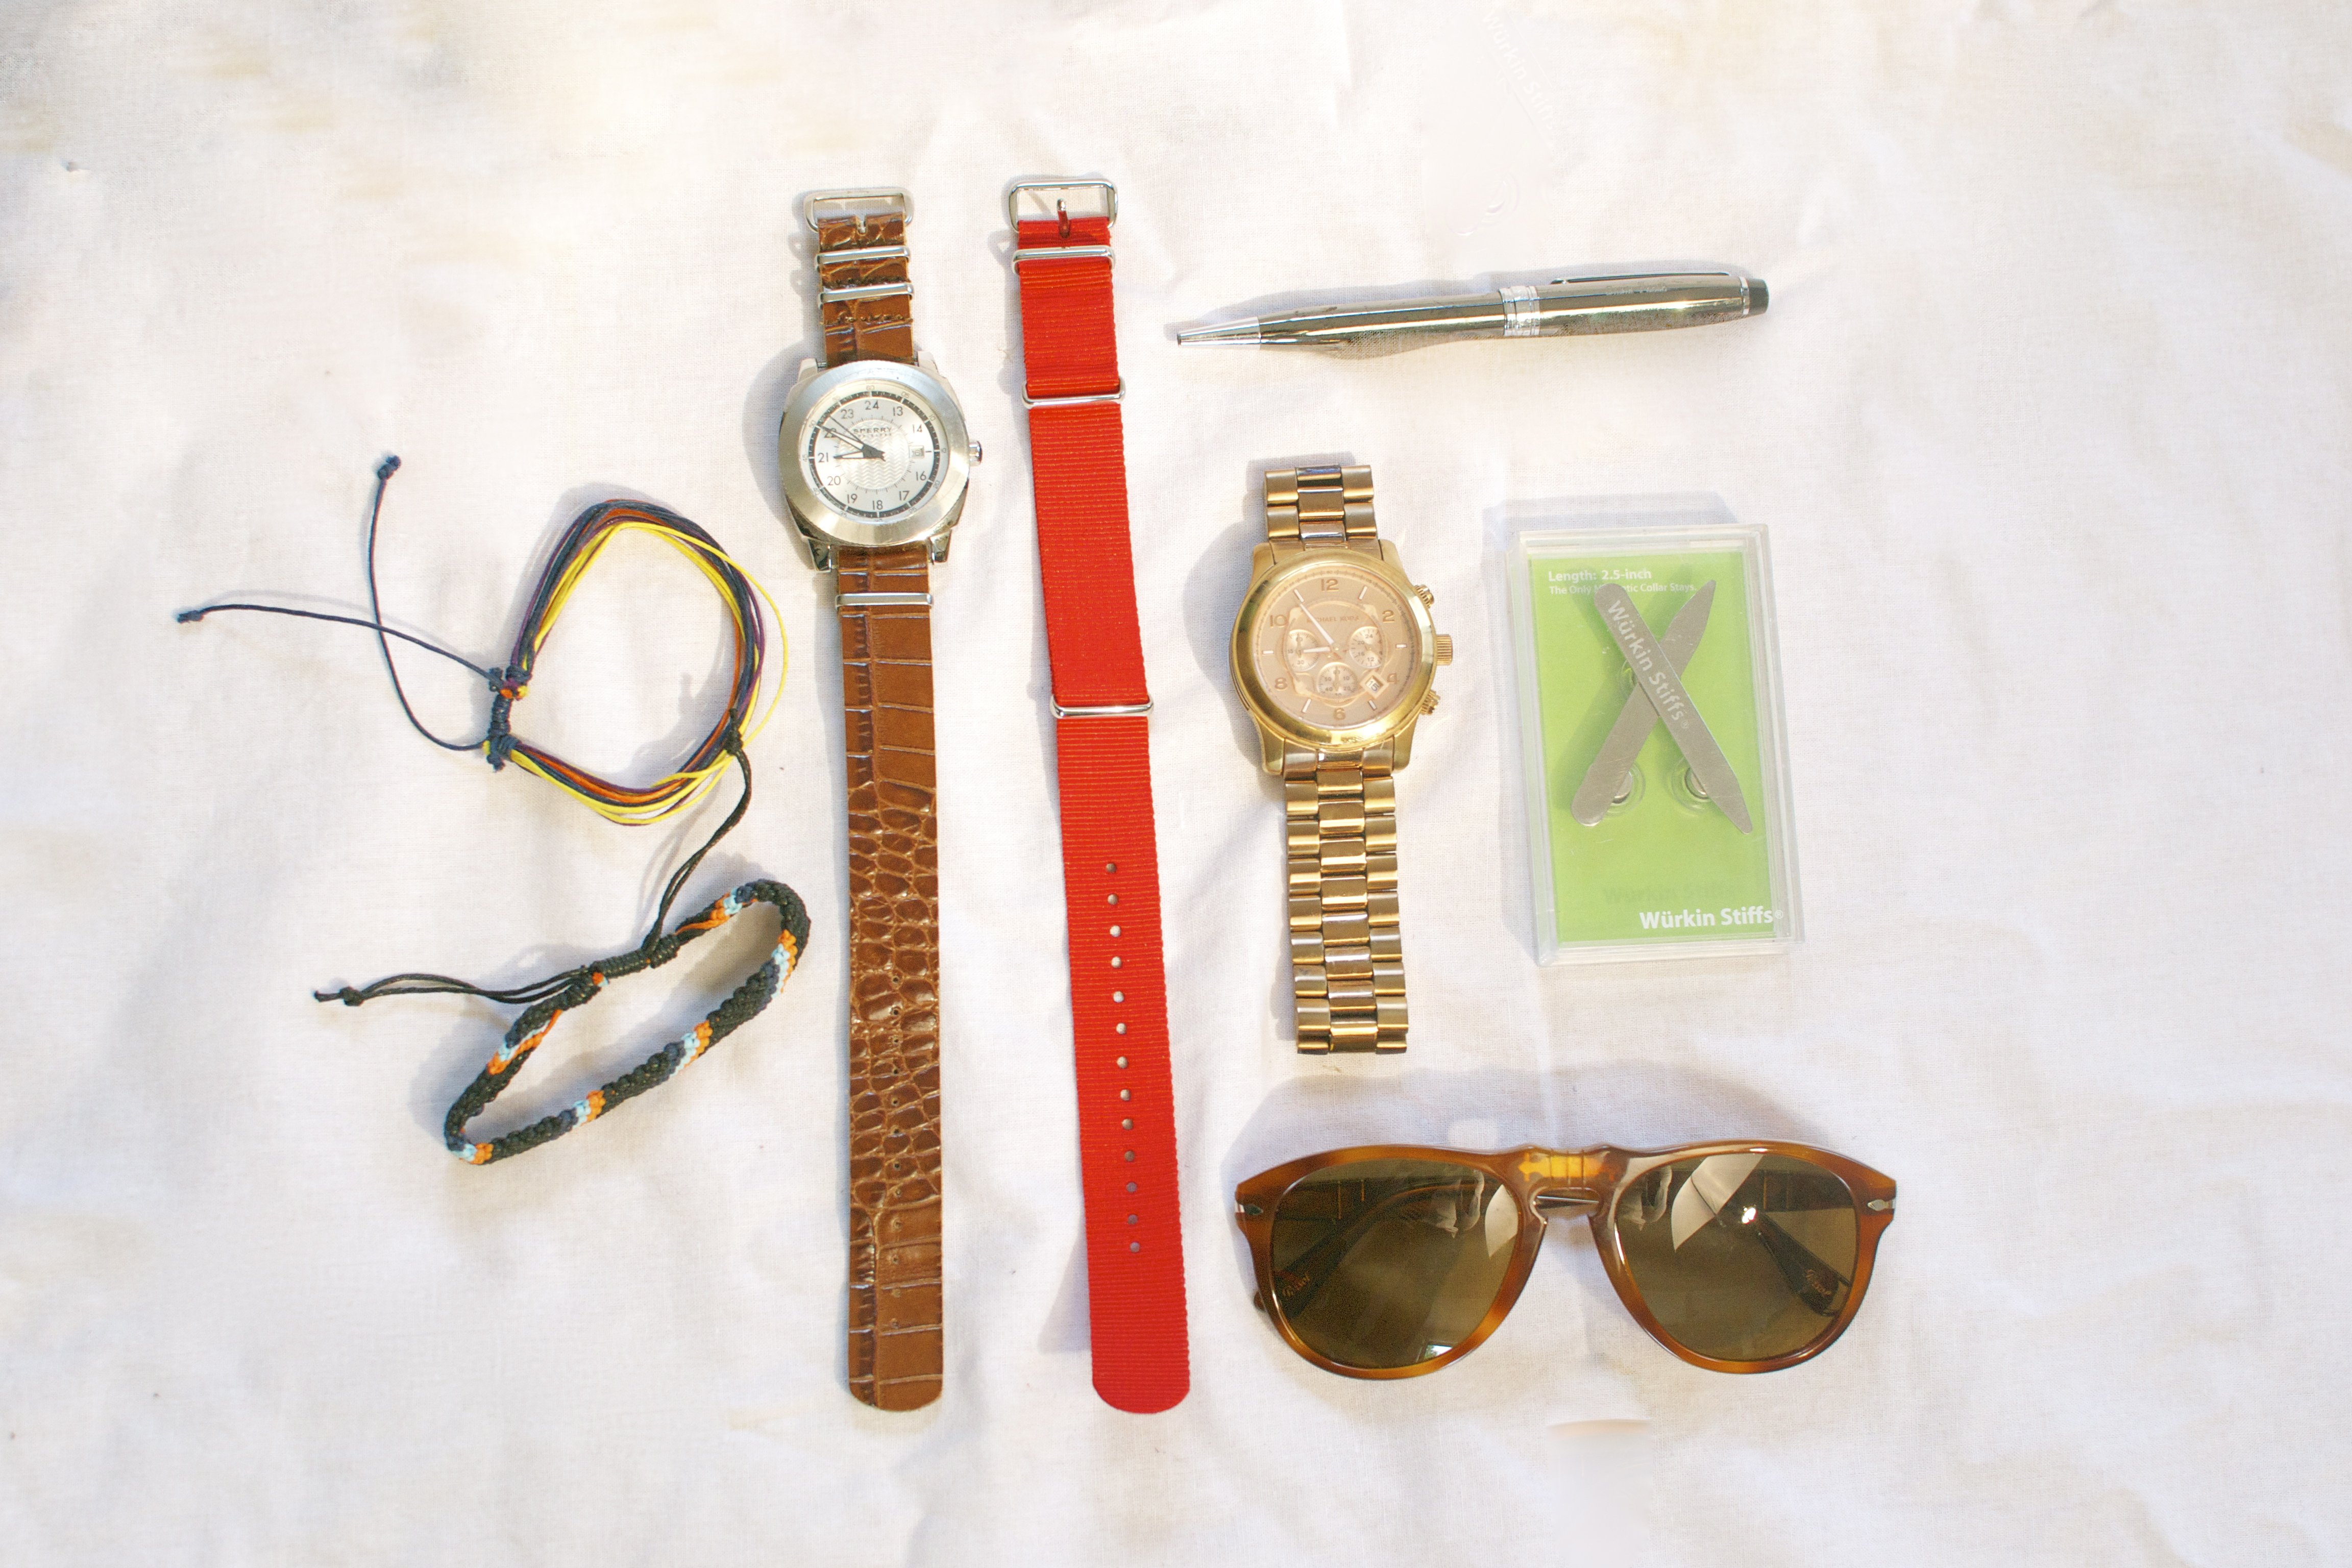 Watch Straps from the Knottery, Watch by Sperry